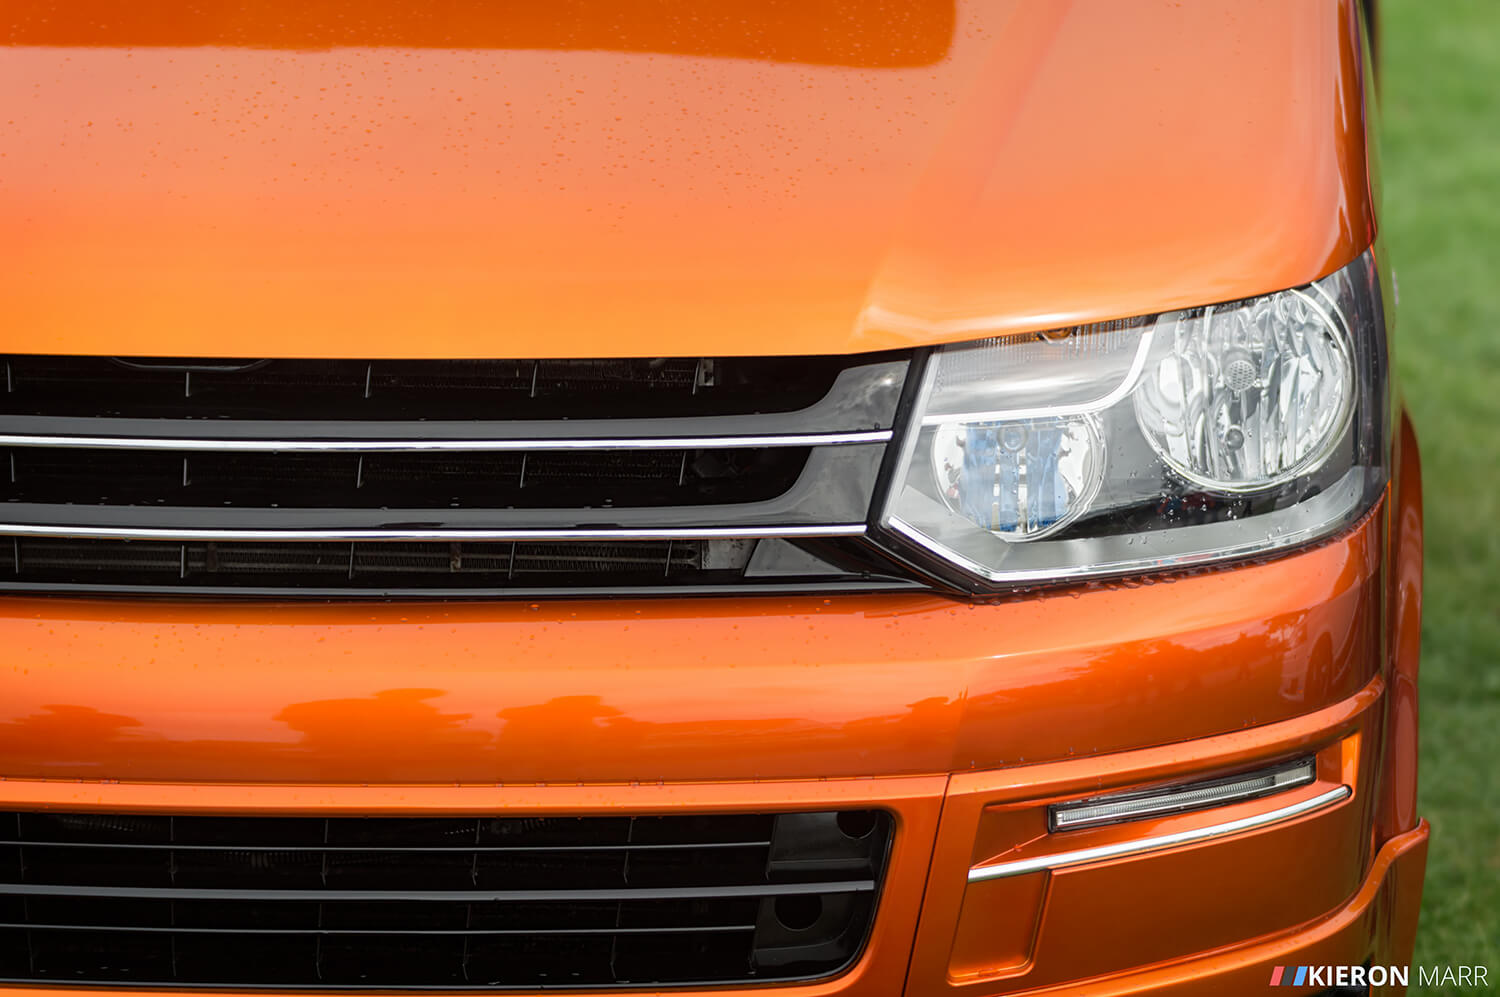 Volkswagen Transporter - Orange